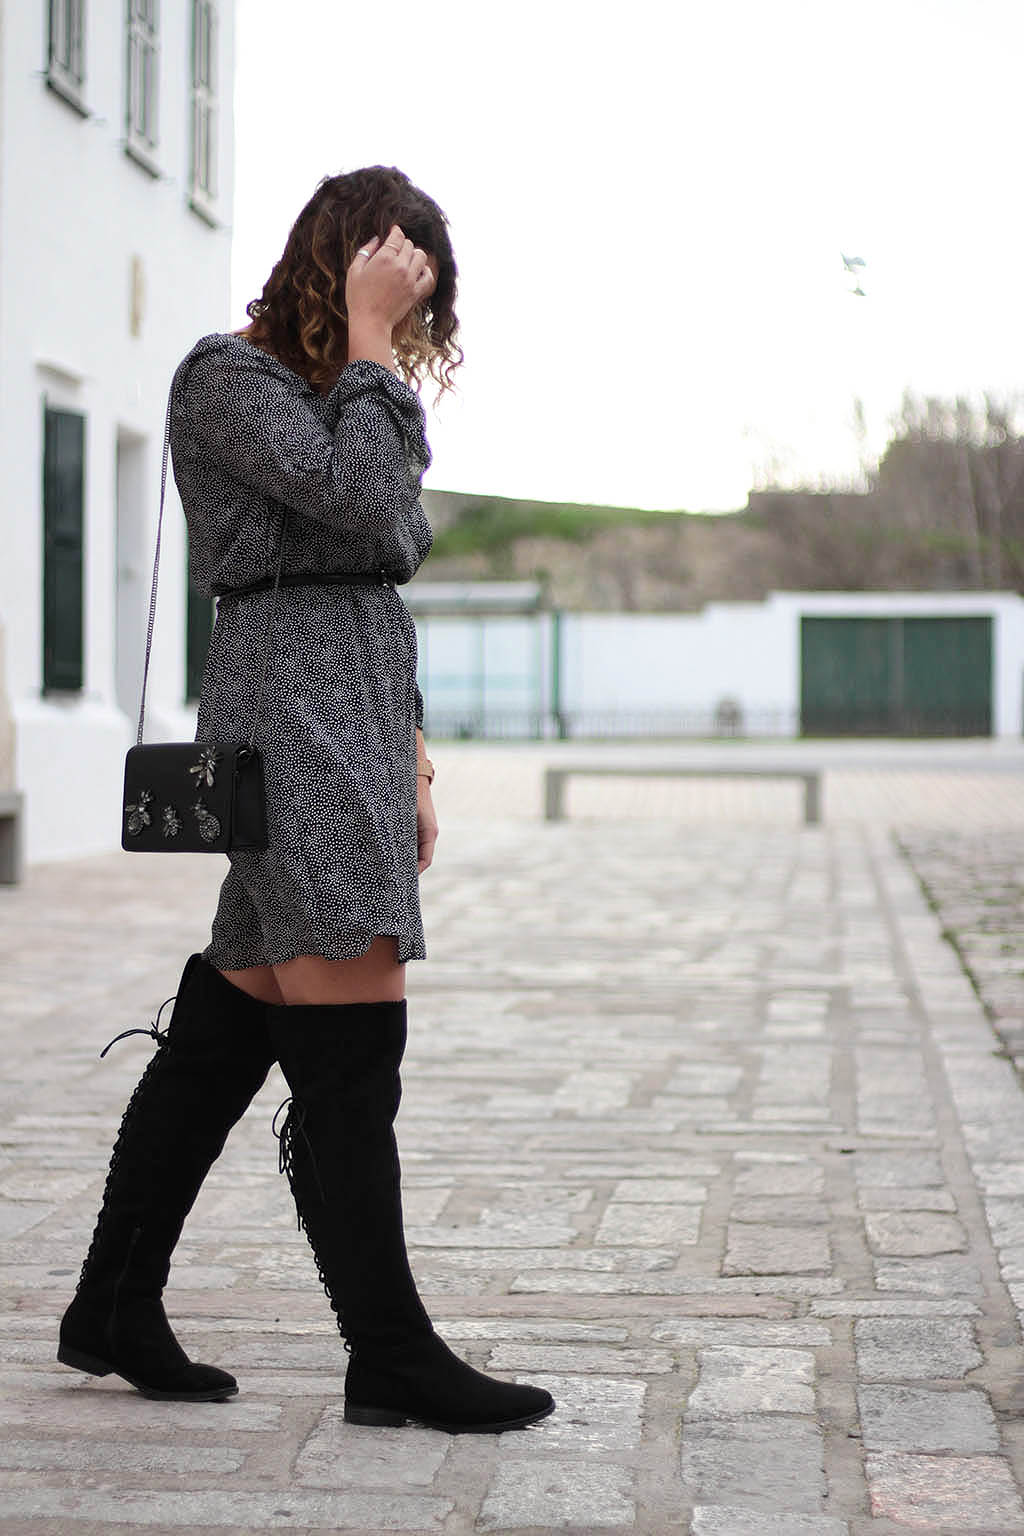 style-mode-fashion-blog-tenue-idee-inspiration-conseil-cuissardes-robe